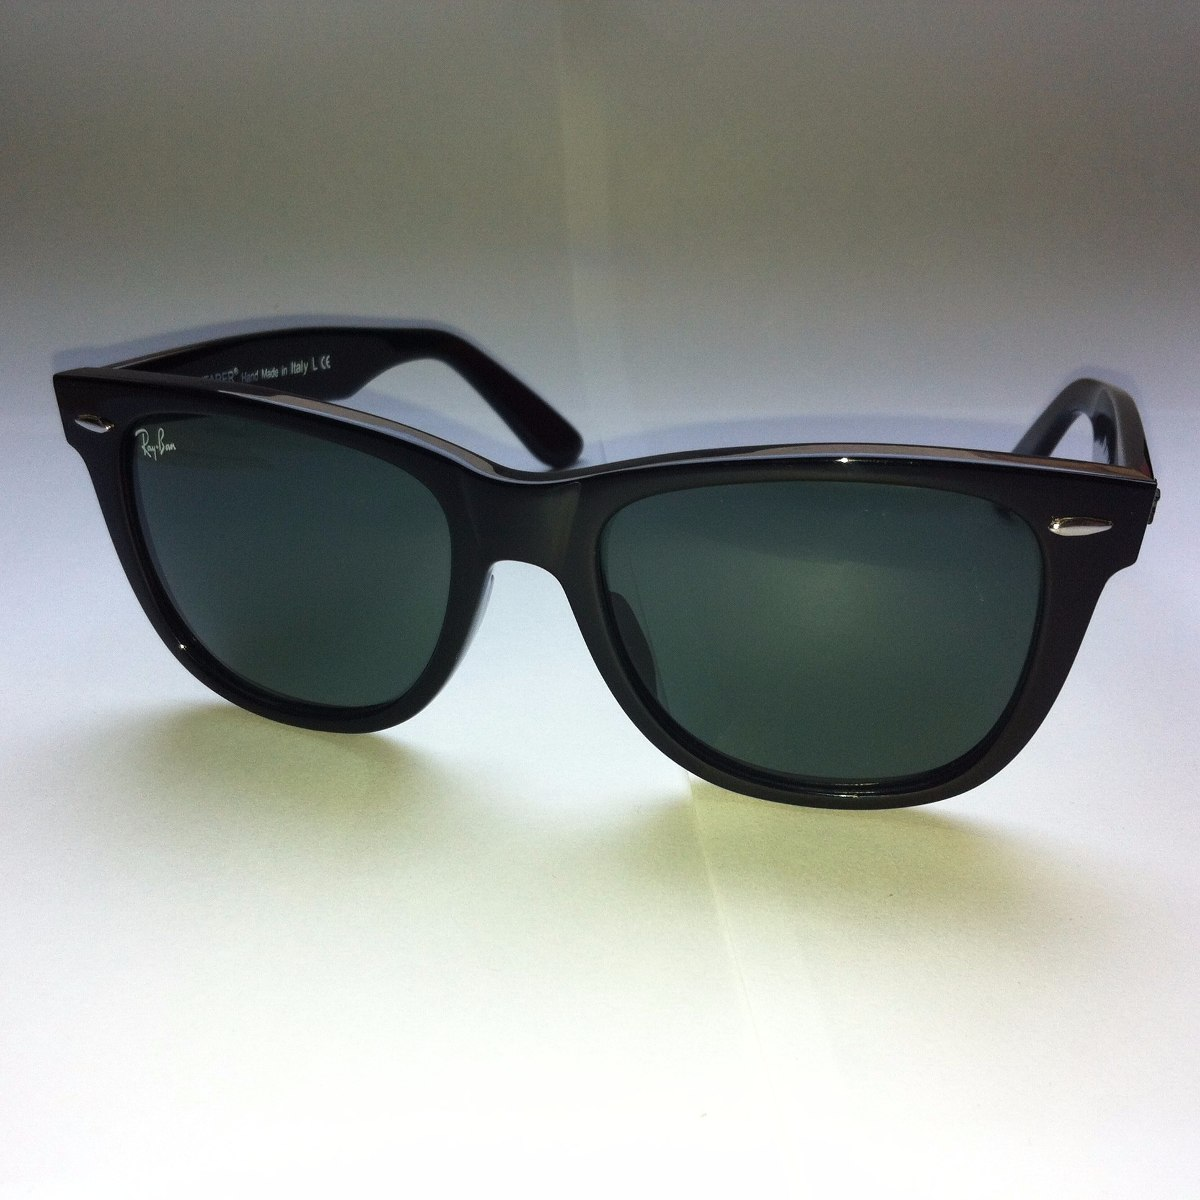 bde62185b6a ... ray ban rb2140 54mm